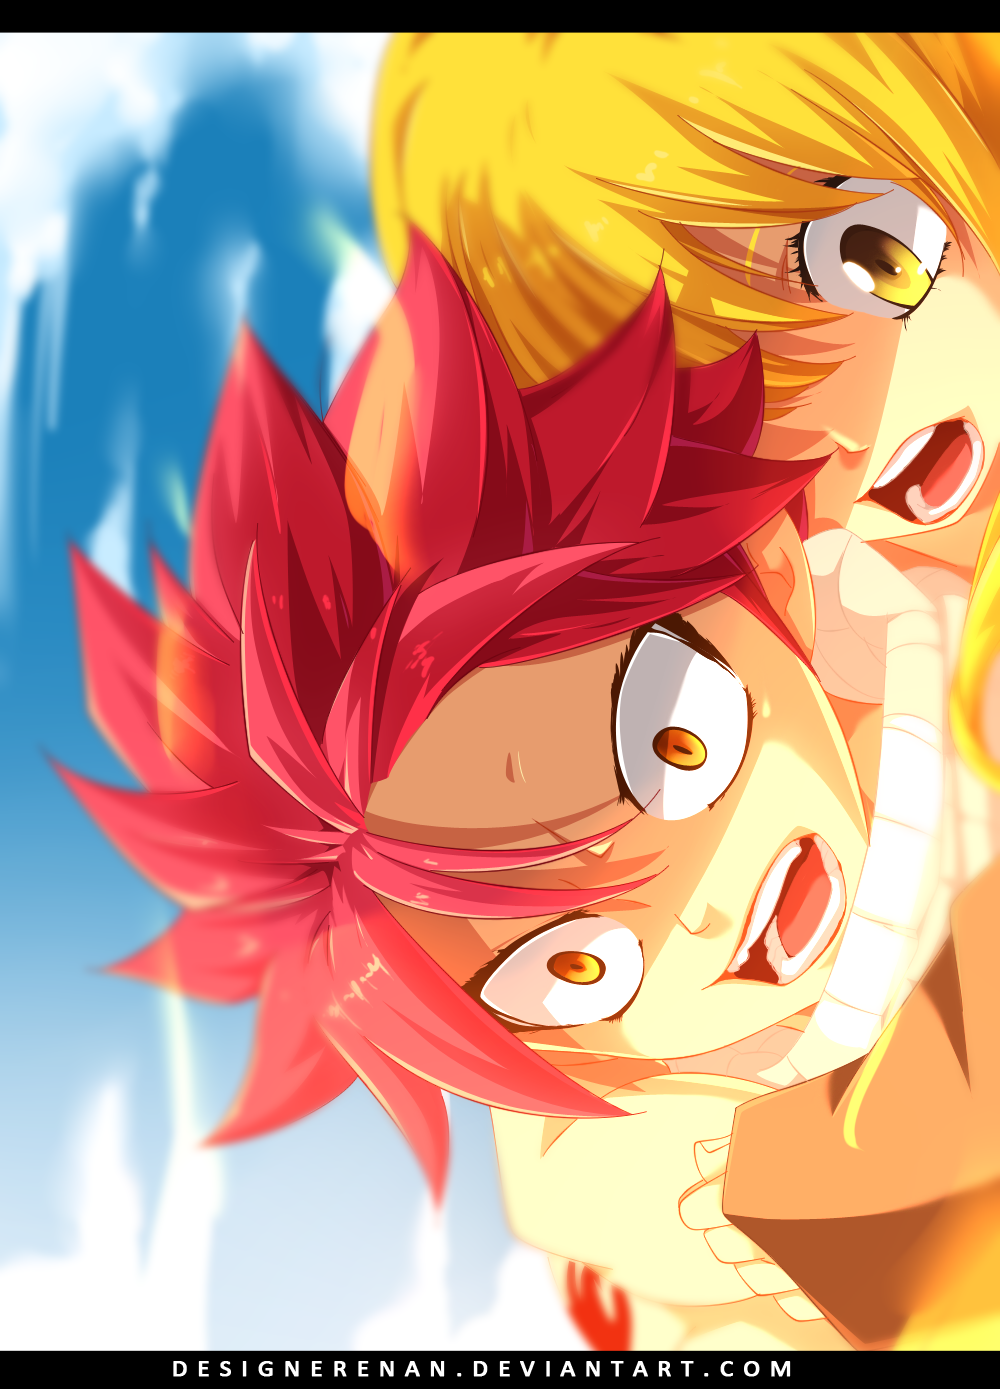 Fairy tail omake lucy and natsu speedvideo by designerrenan on deviantart - Fairy tail lucy et natsu ...